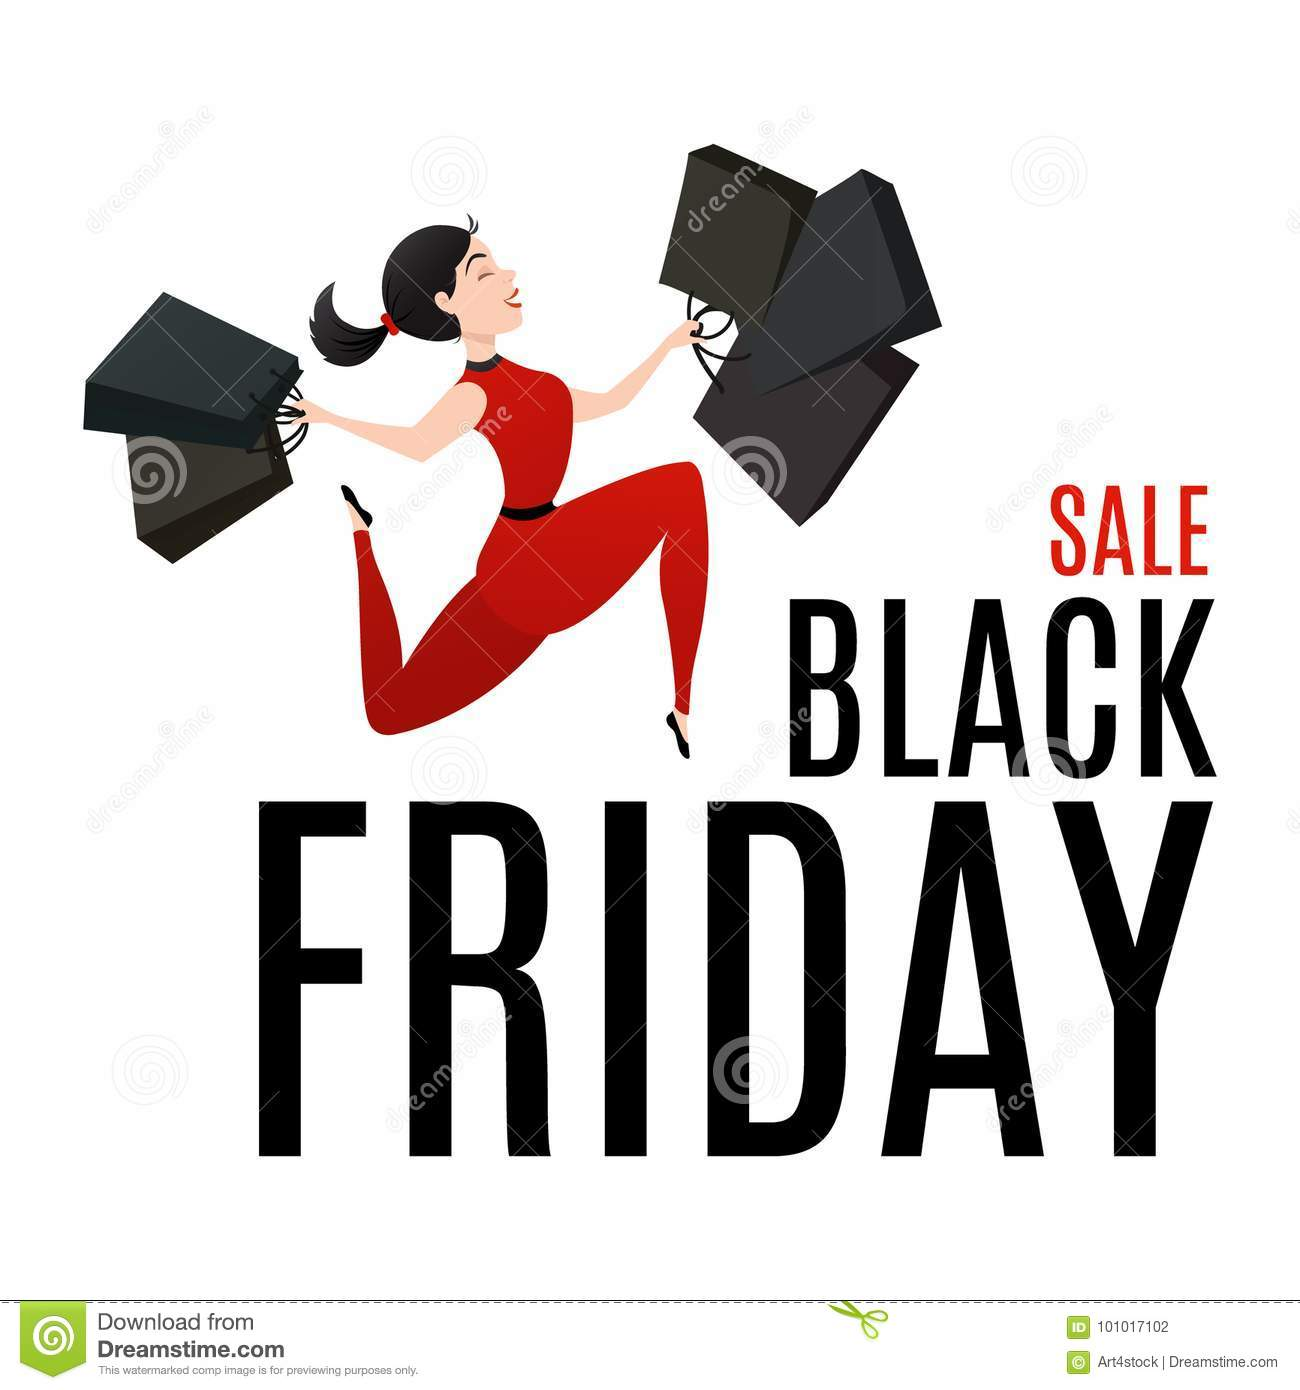 Black Friday Sale Poster With Happy Customer Stock Vector Illustration Of Isolated Card 101017102